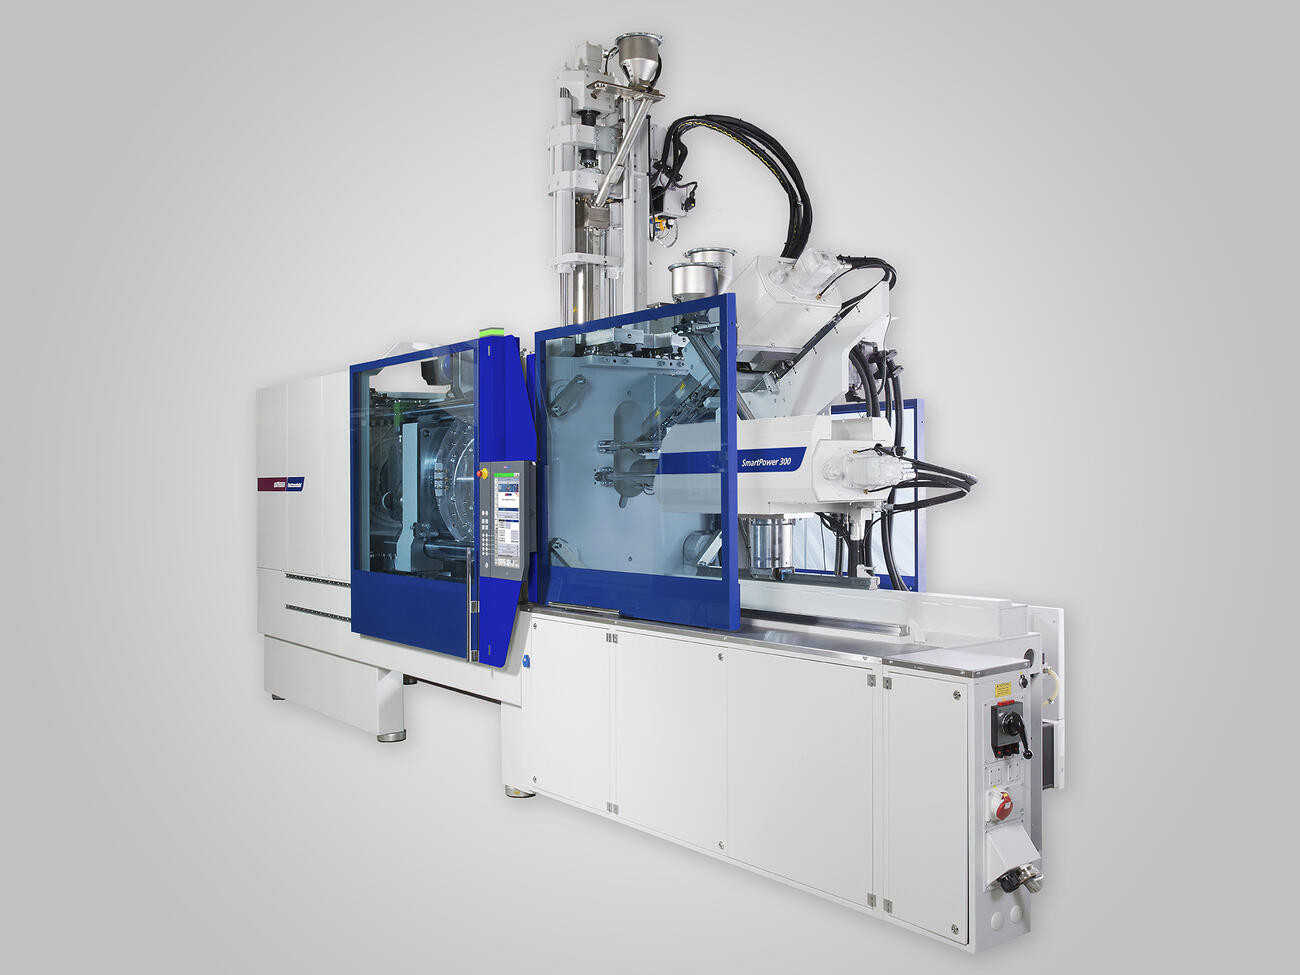 Smart Power 300 COMBIMOULD